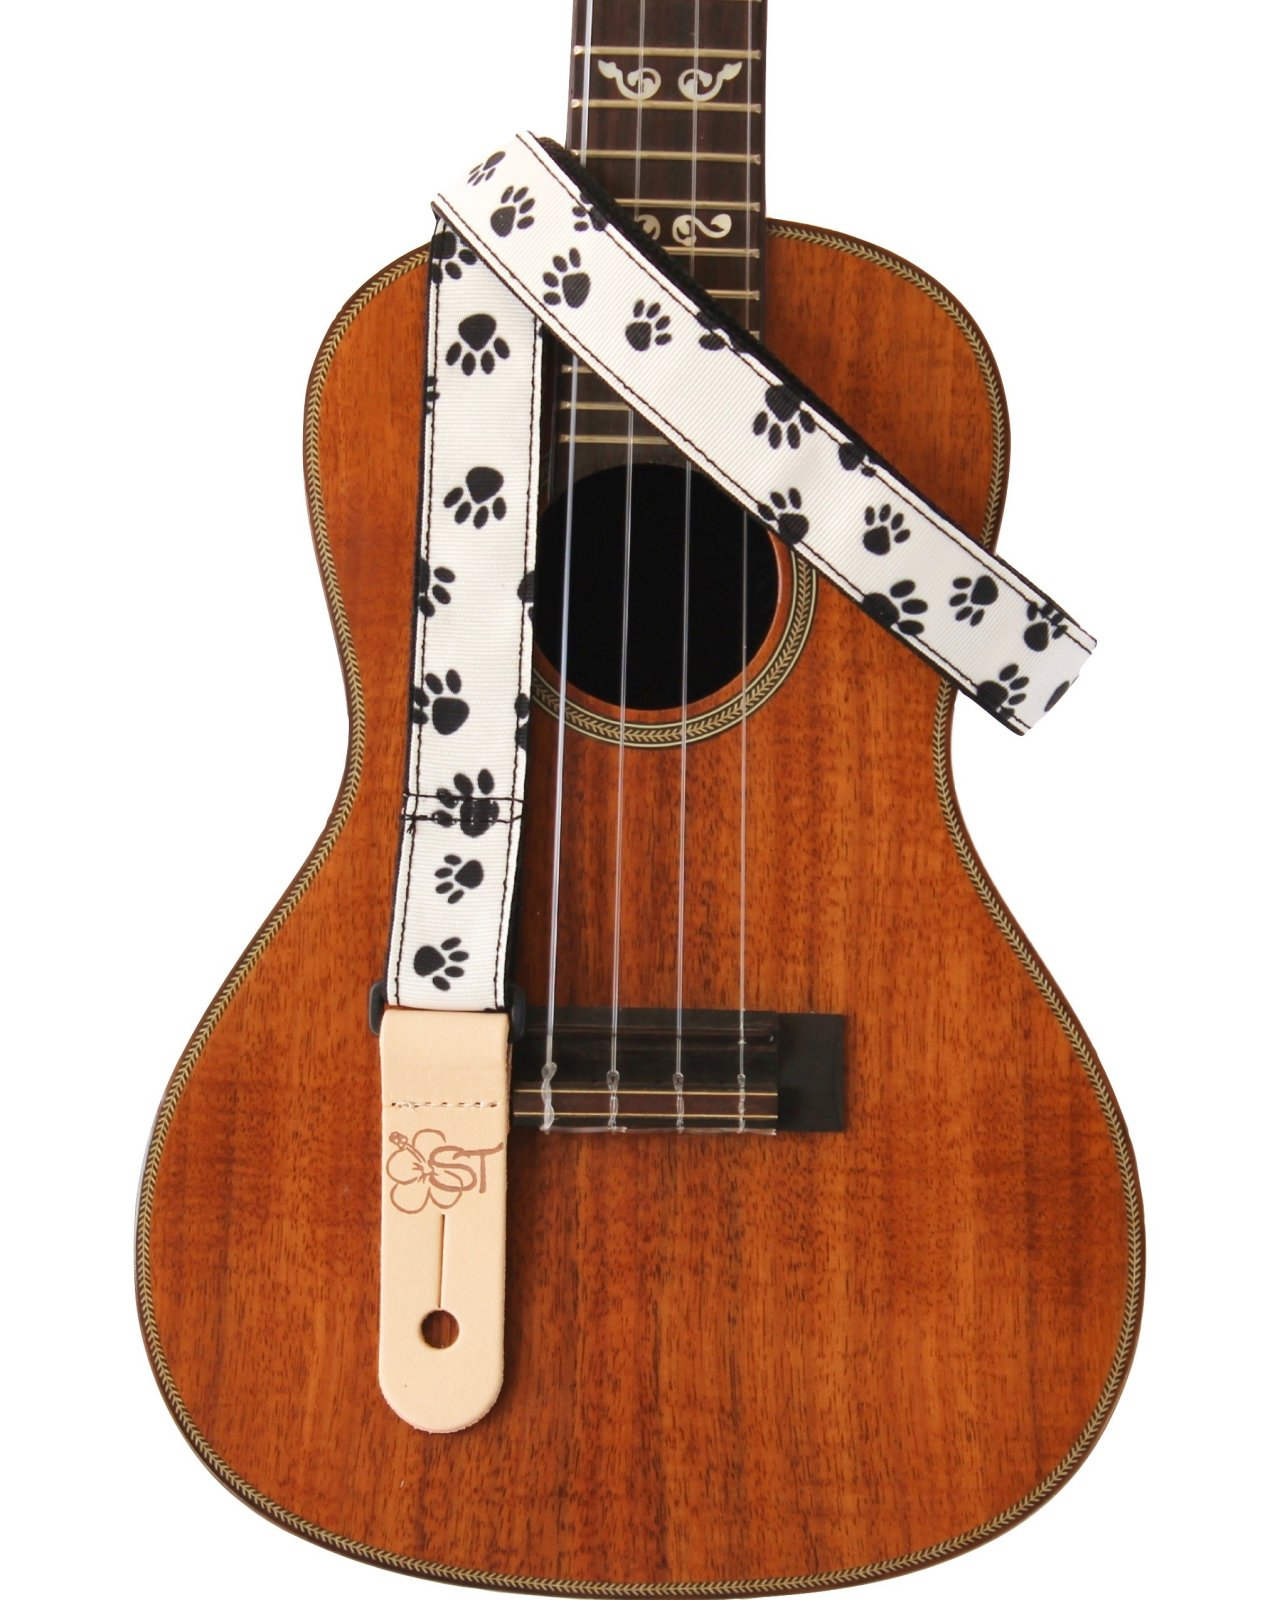 ST 1 Ukulele Strap - Paw Prints on White